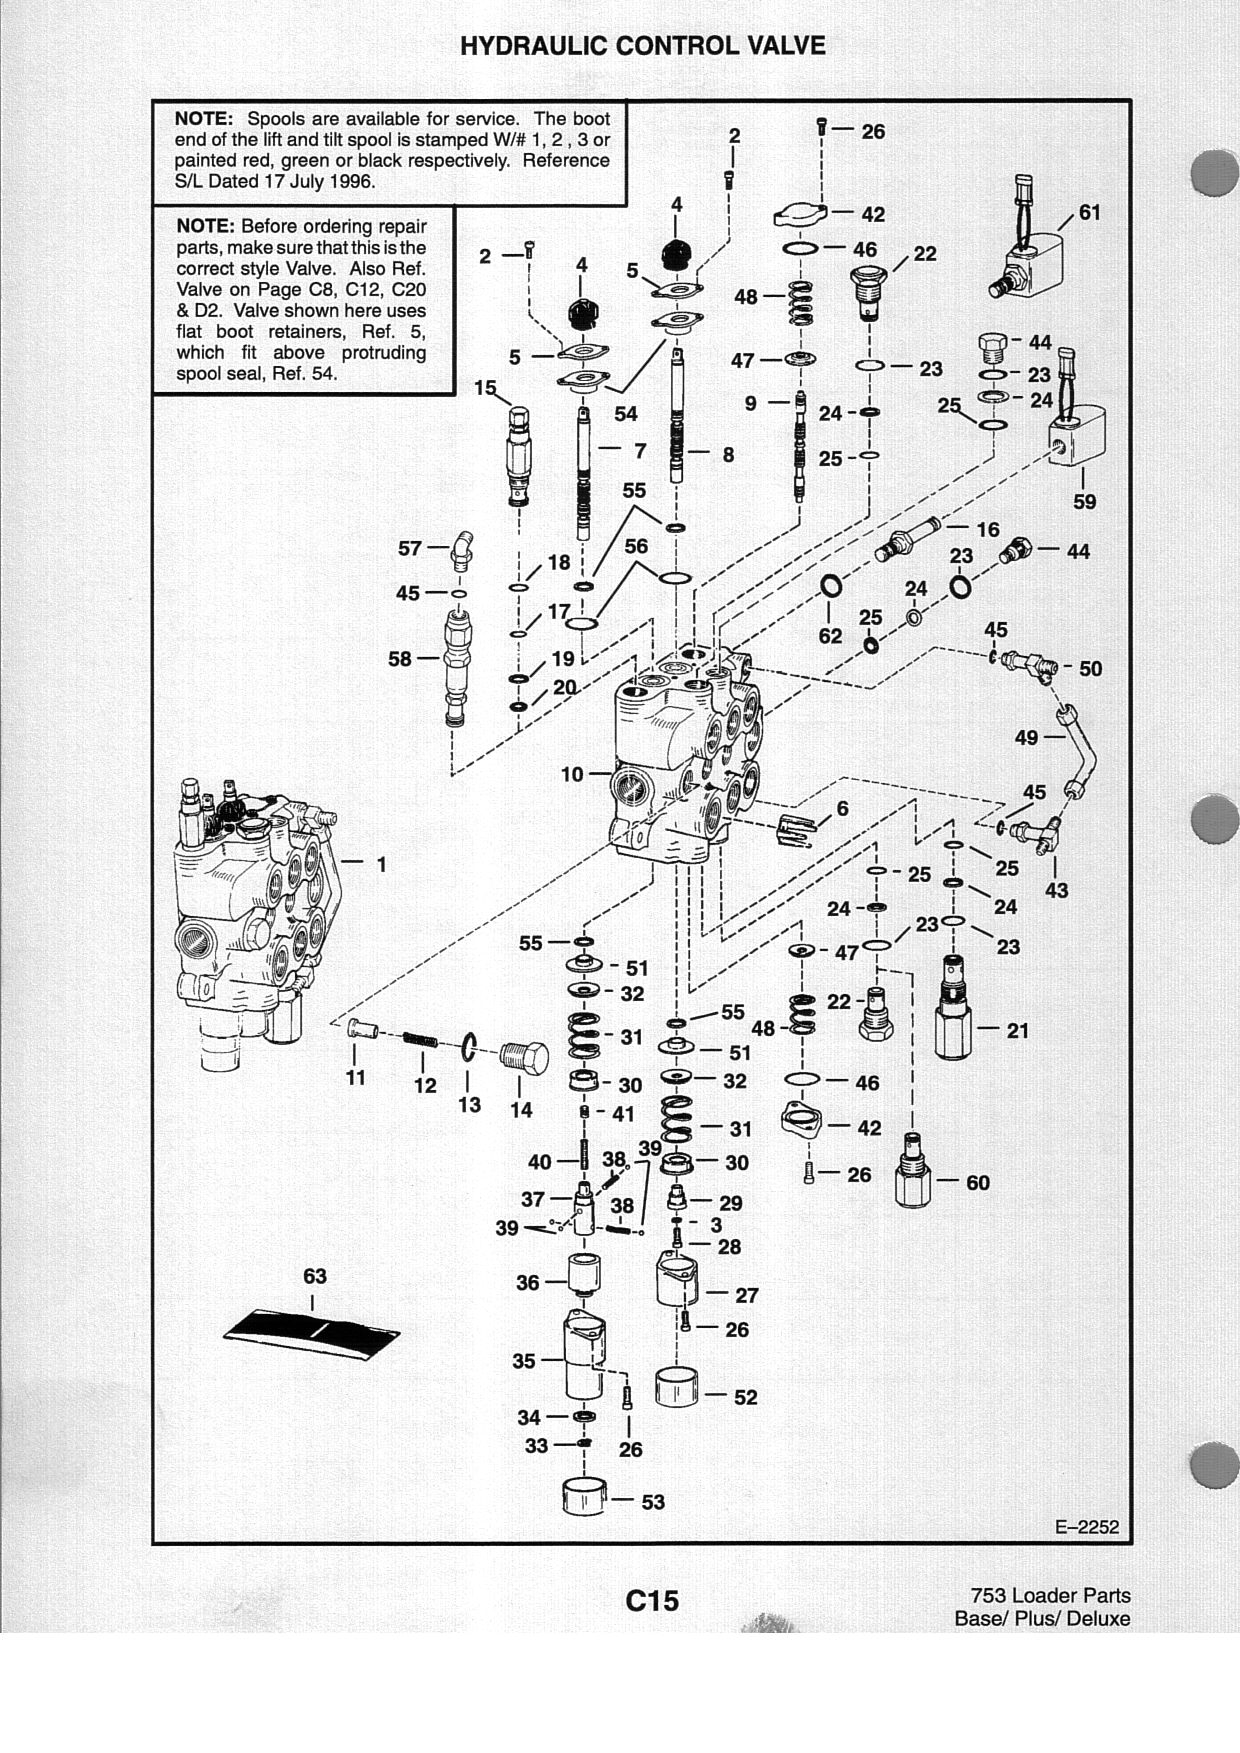 similiar bobcat 763 hydraulic parts breakdown keywords pin 743 bobcat hydraulic diagram